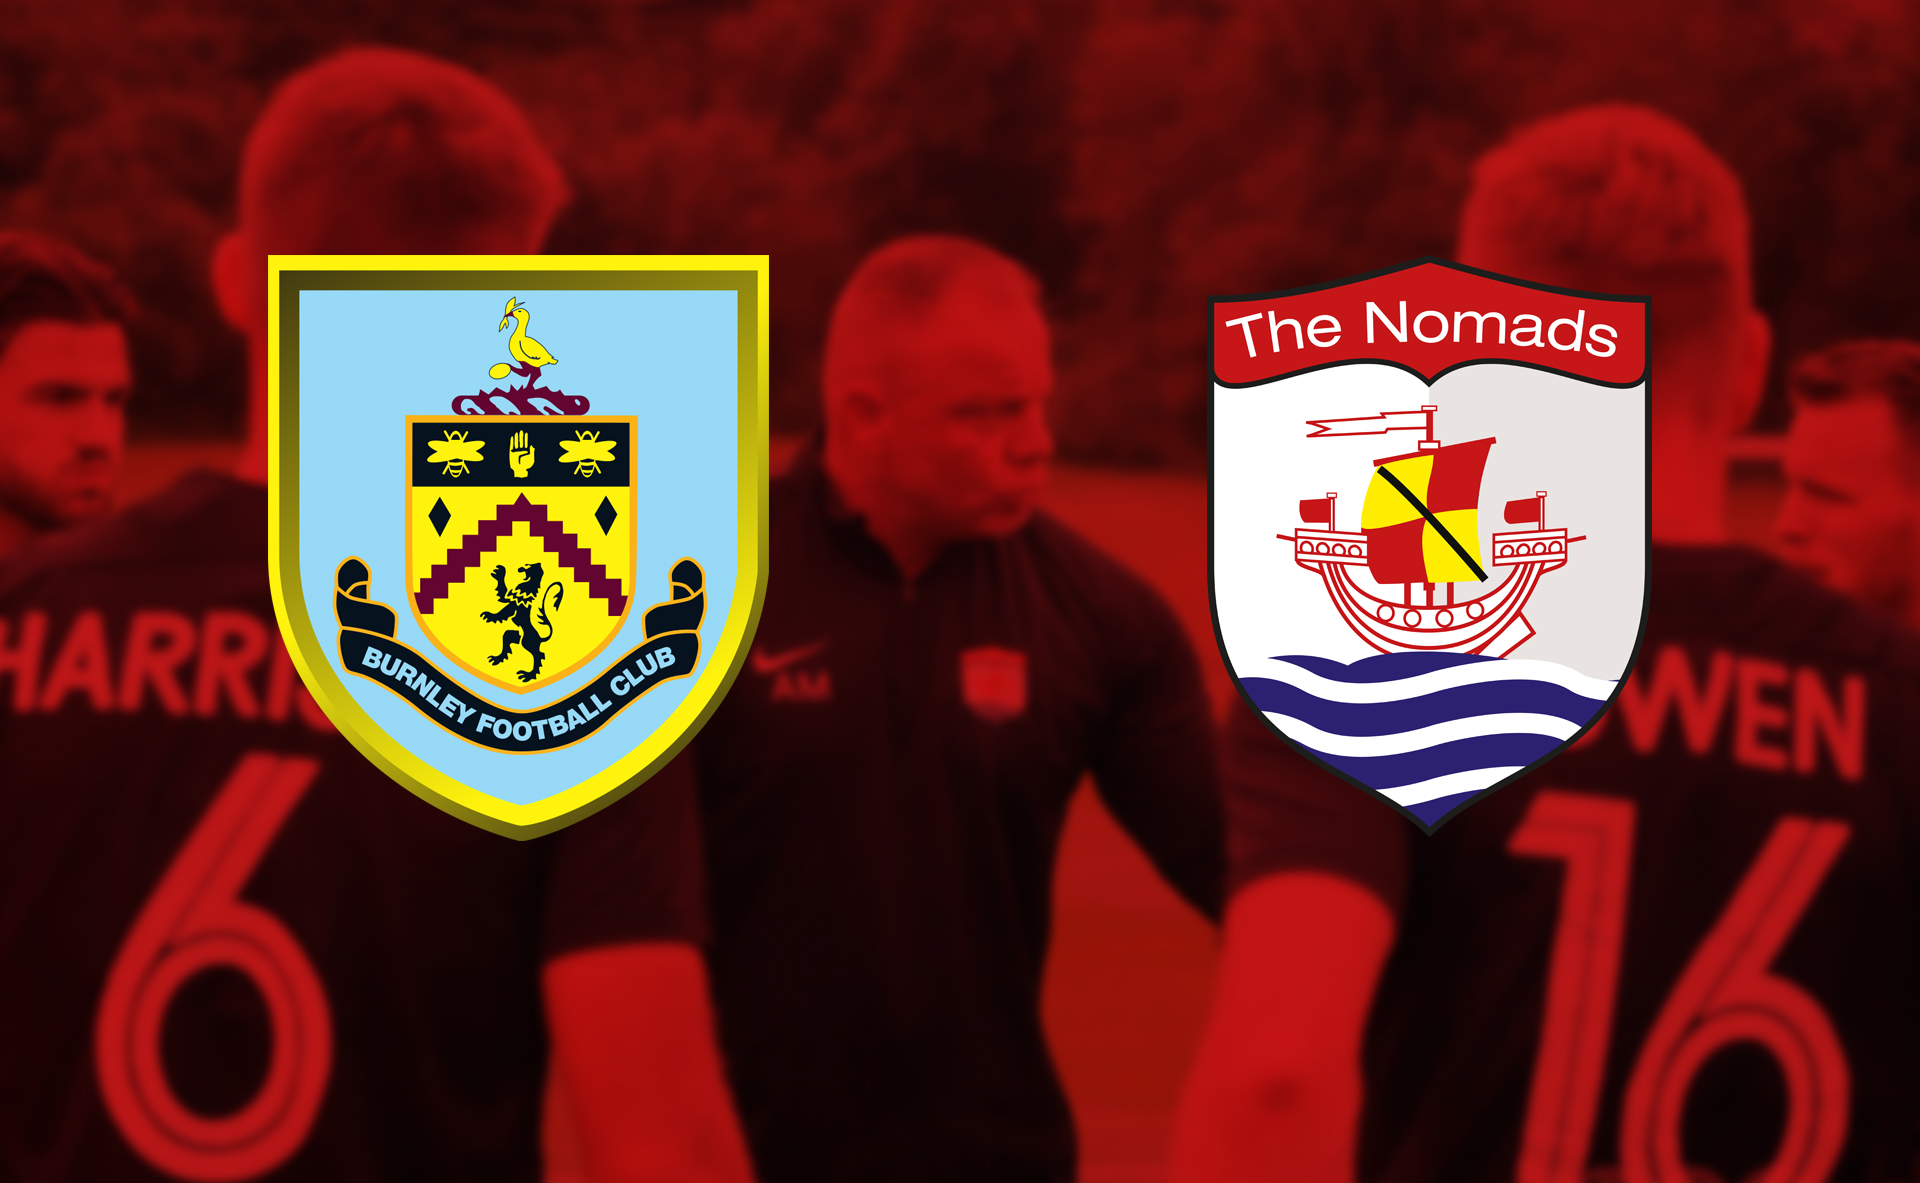 Burnley U23 vs Connah's Quay Nomads | Saturday August 3rd | 11:30pm kick off